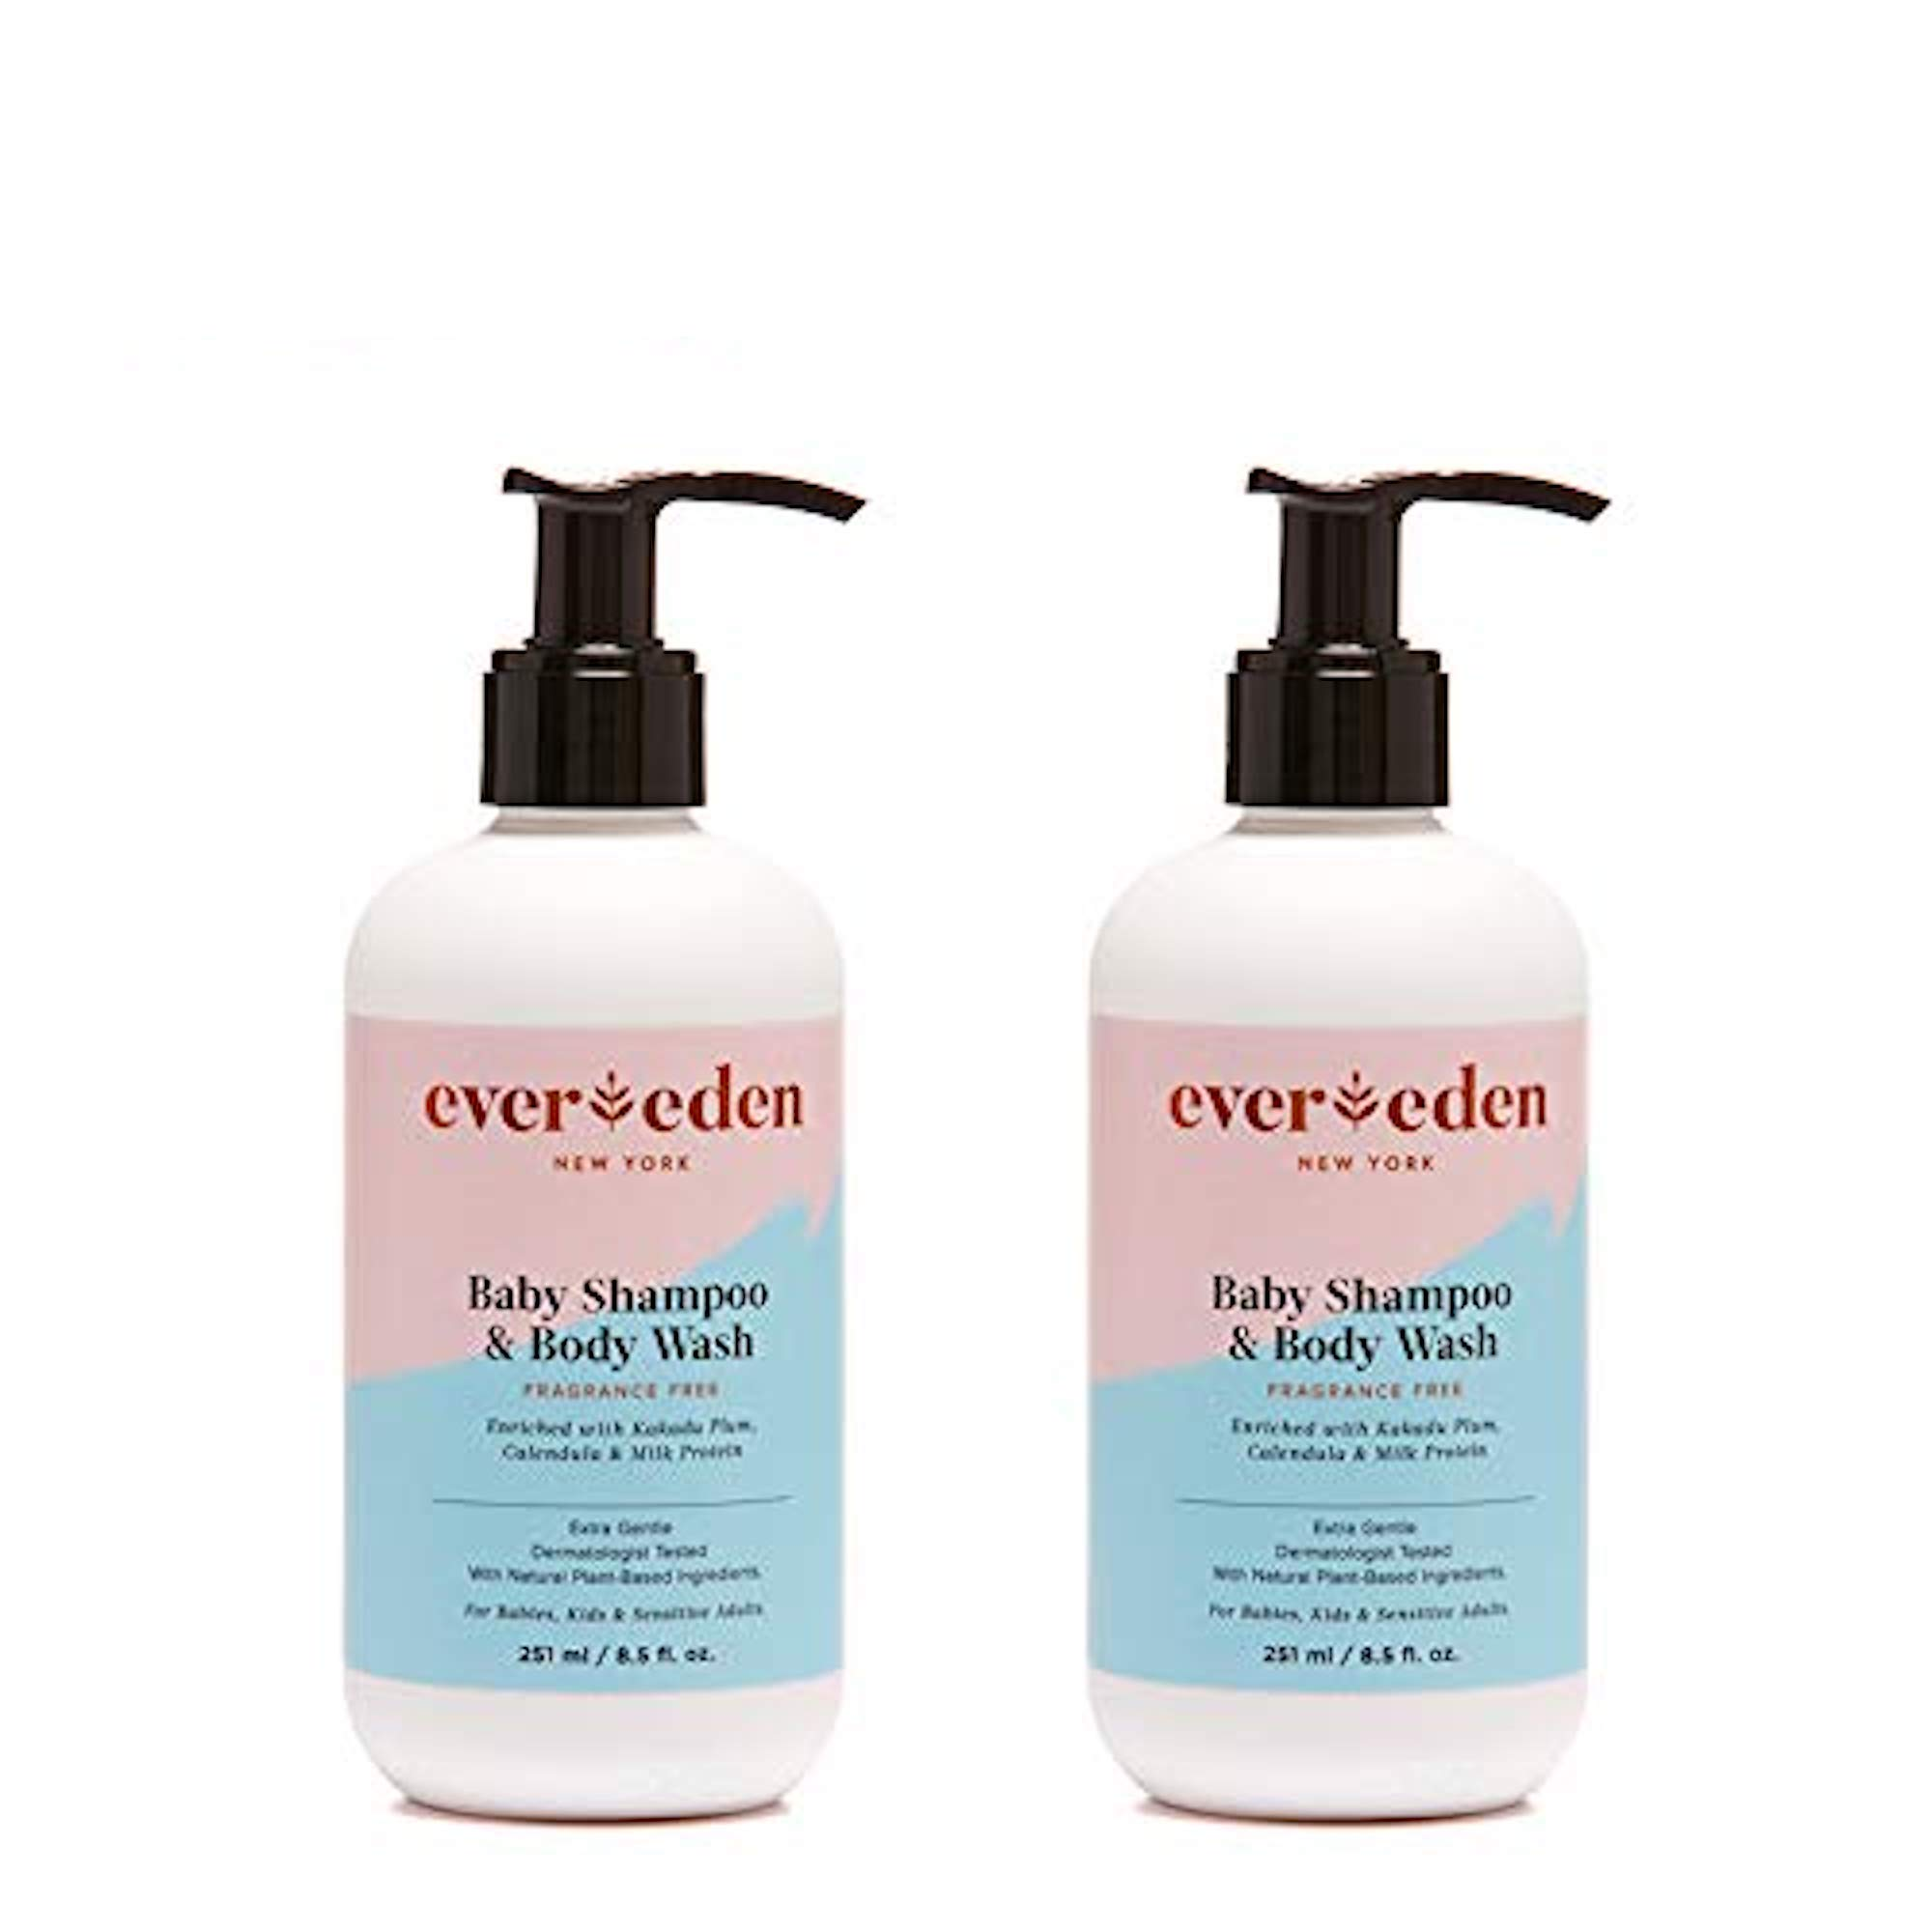 Evereden Baby Shampoo & Baby Wash - Fragrance Free Baby Soap - Tear Free, Shampoo with Natural, Organic and Plant-Based Ingredients: Avocado Oil & Coconut Oil - Perfect Baby Shower Gifts (2 Pack) by Evereden